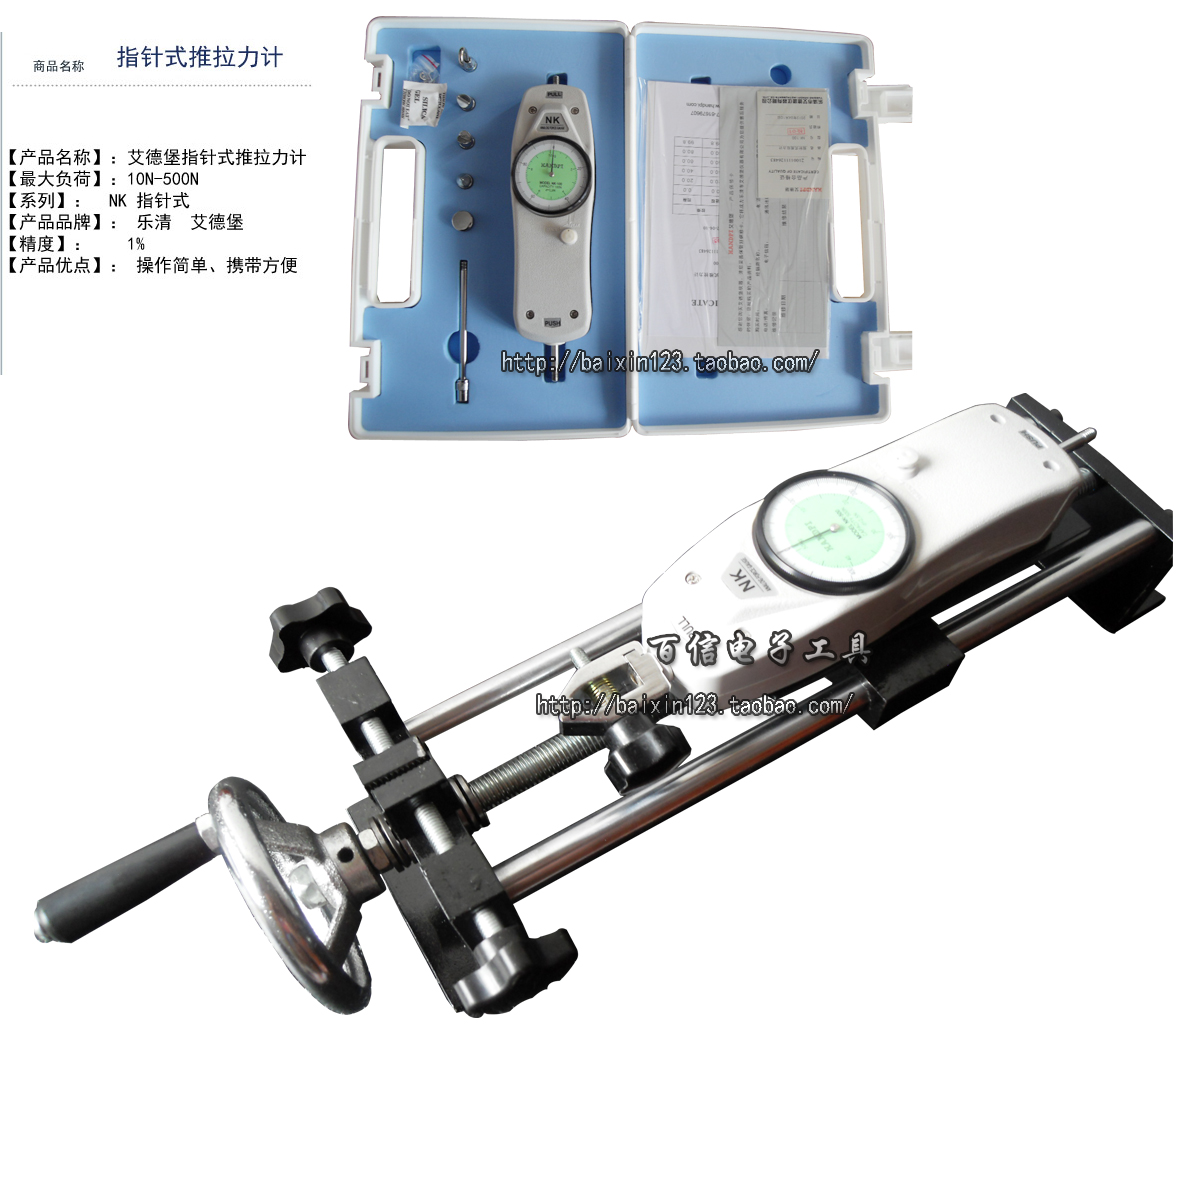 Usd 859 Simple Type Horizontal Tensile Testing Machine Push Rally Wire Harness Lightbox Moreview